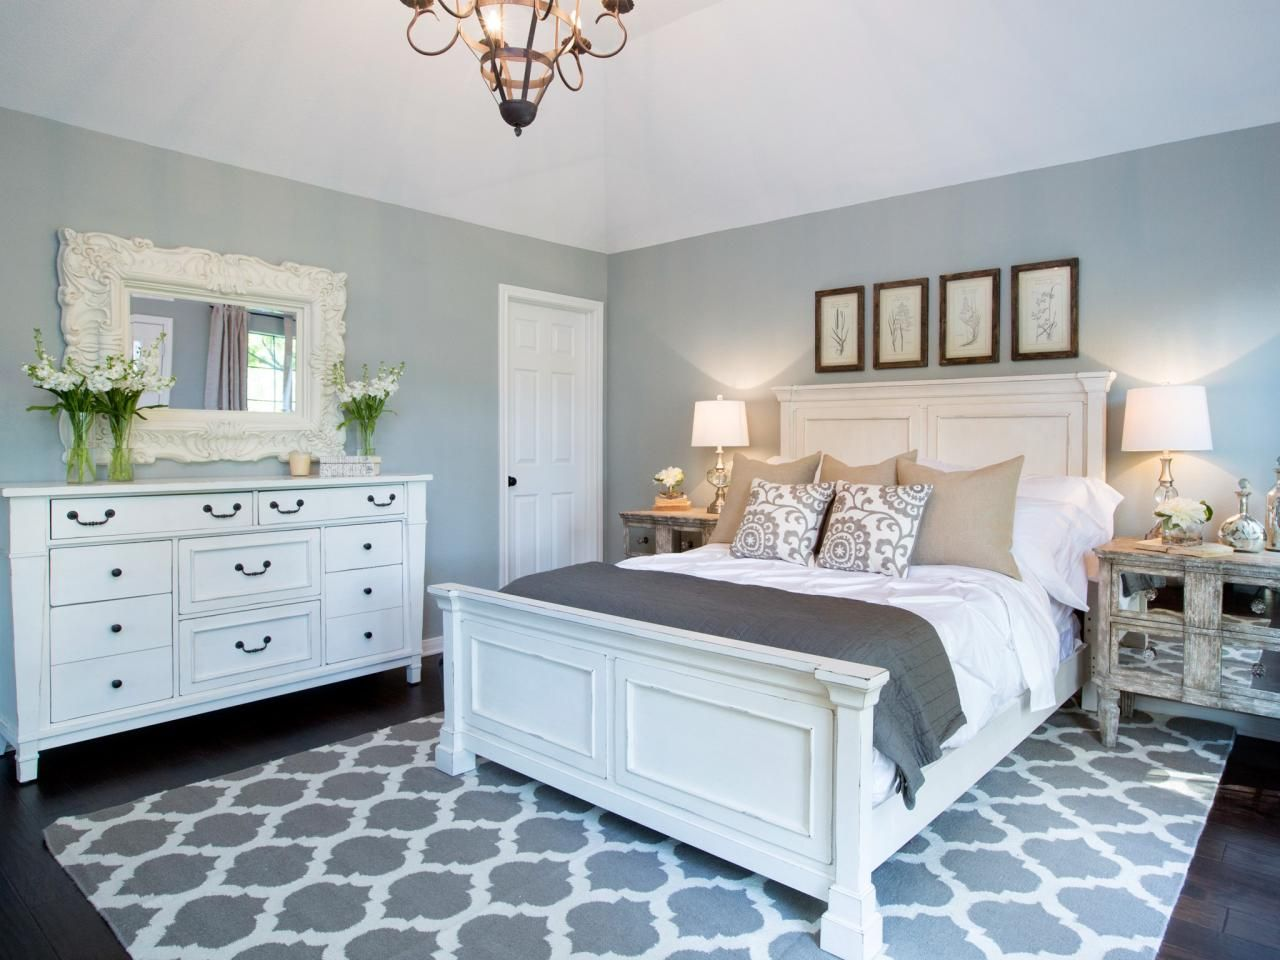 Bedroom Decorating Ideas With White Furniture fixer upper: yours, mine, ours and a home on the river | joanna